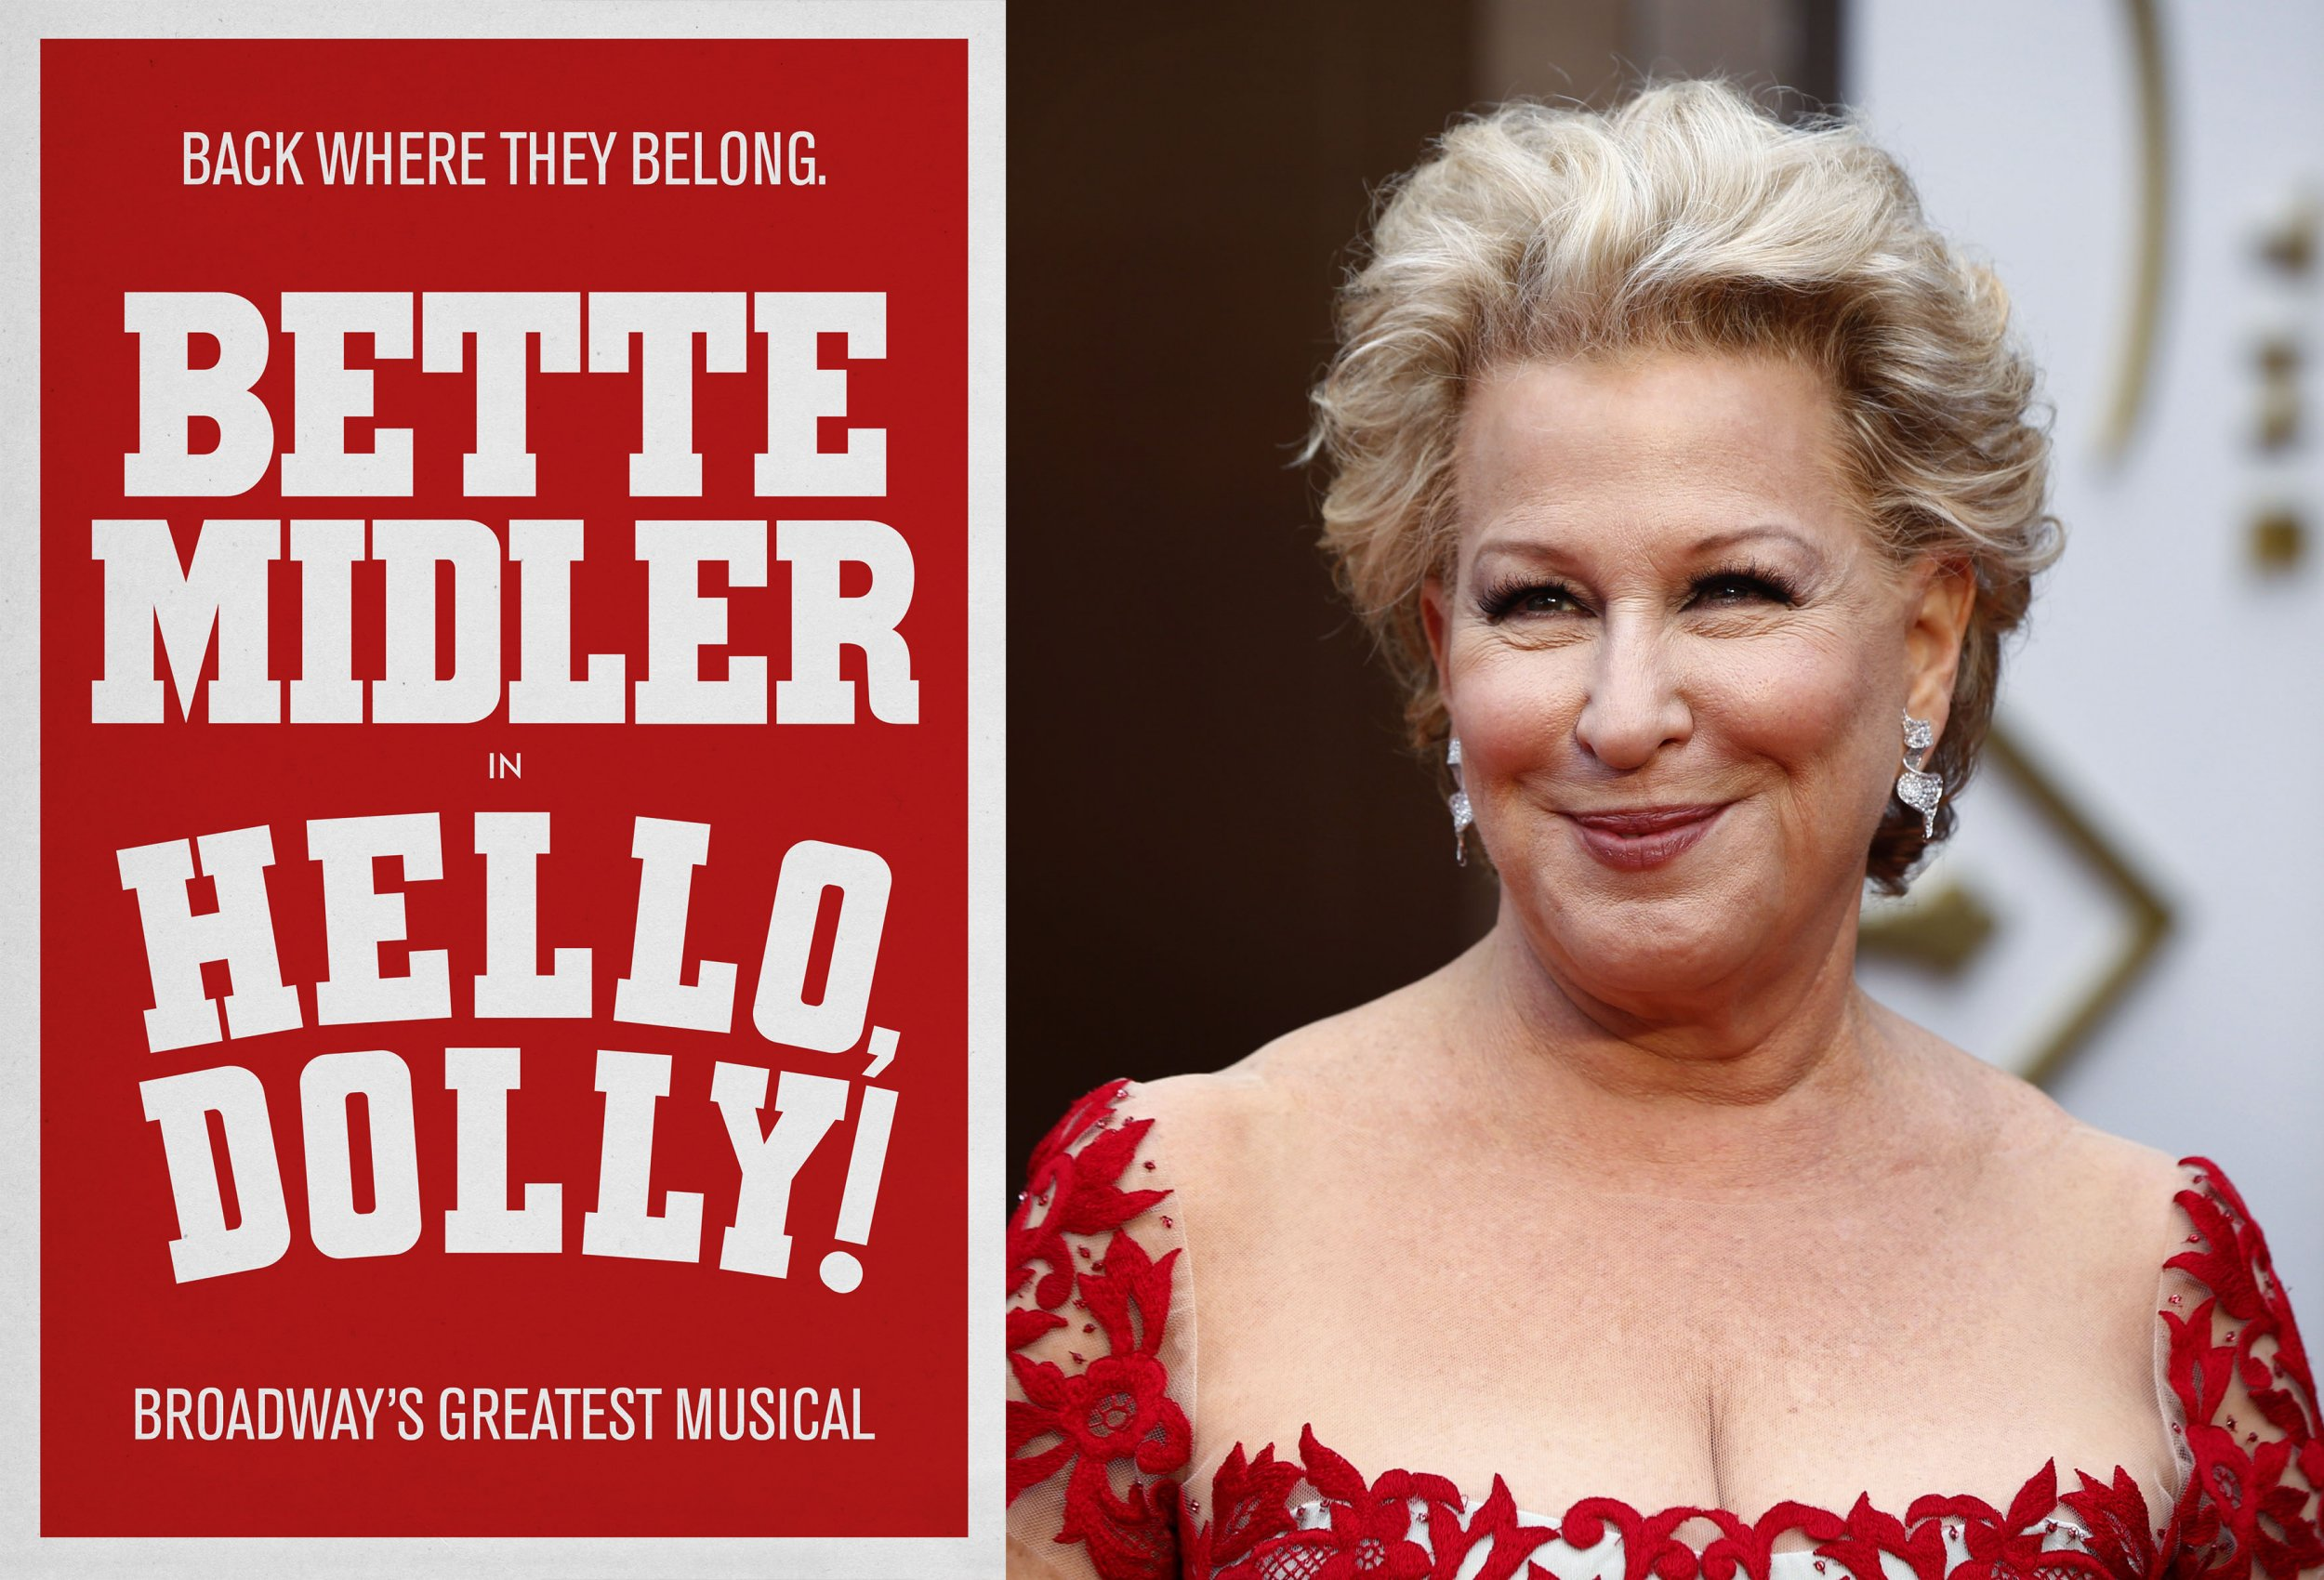 Lyric barbra streisand hello dolly lyrics : Bette Midler to Star in the Broadway Revival of 'Hello, Dolly!'